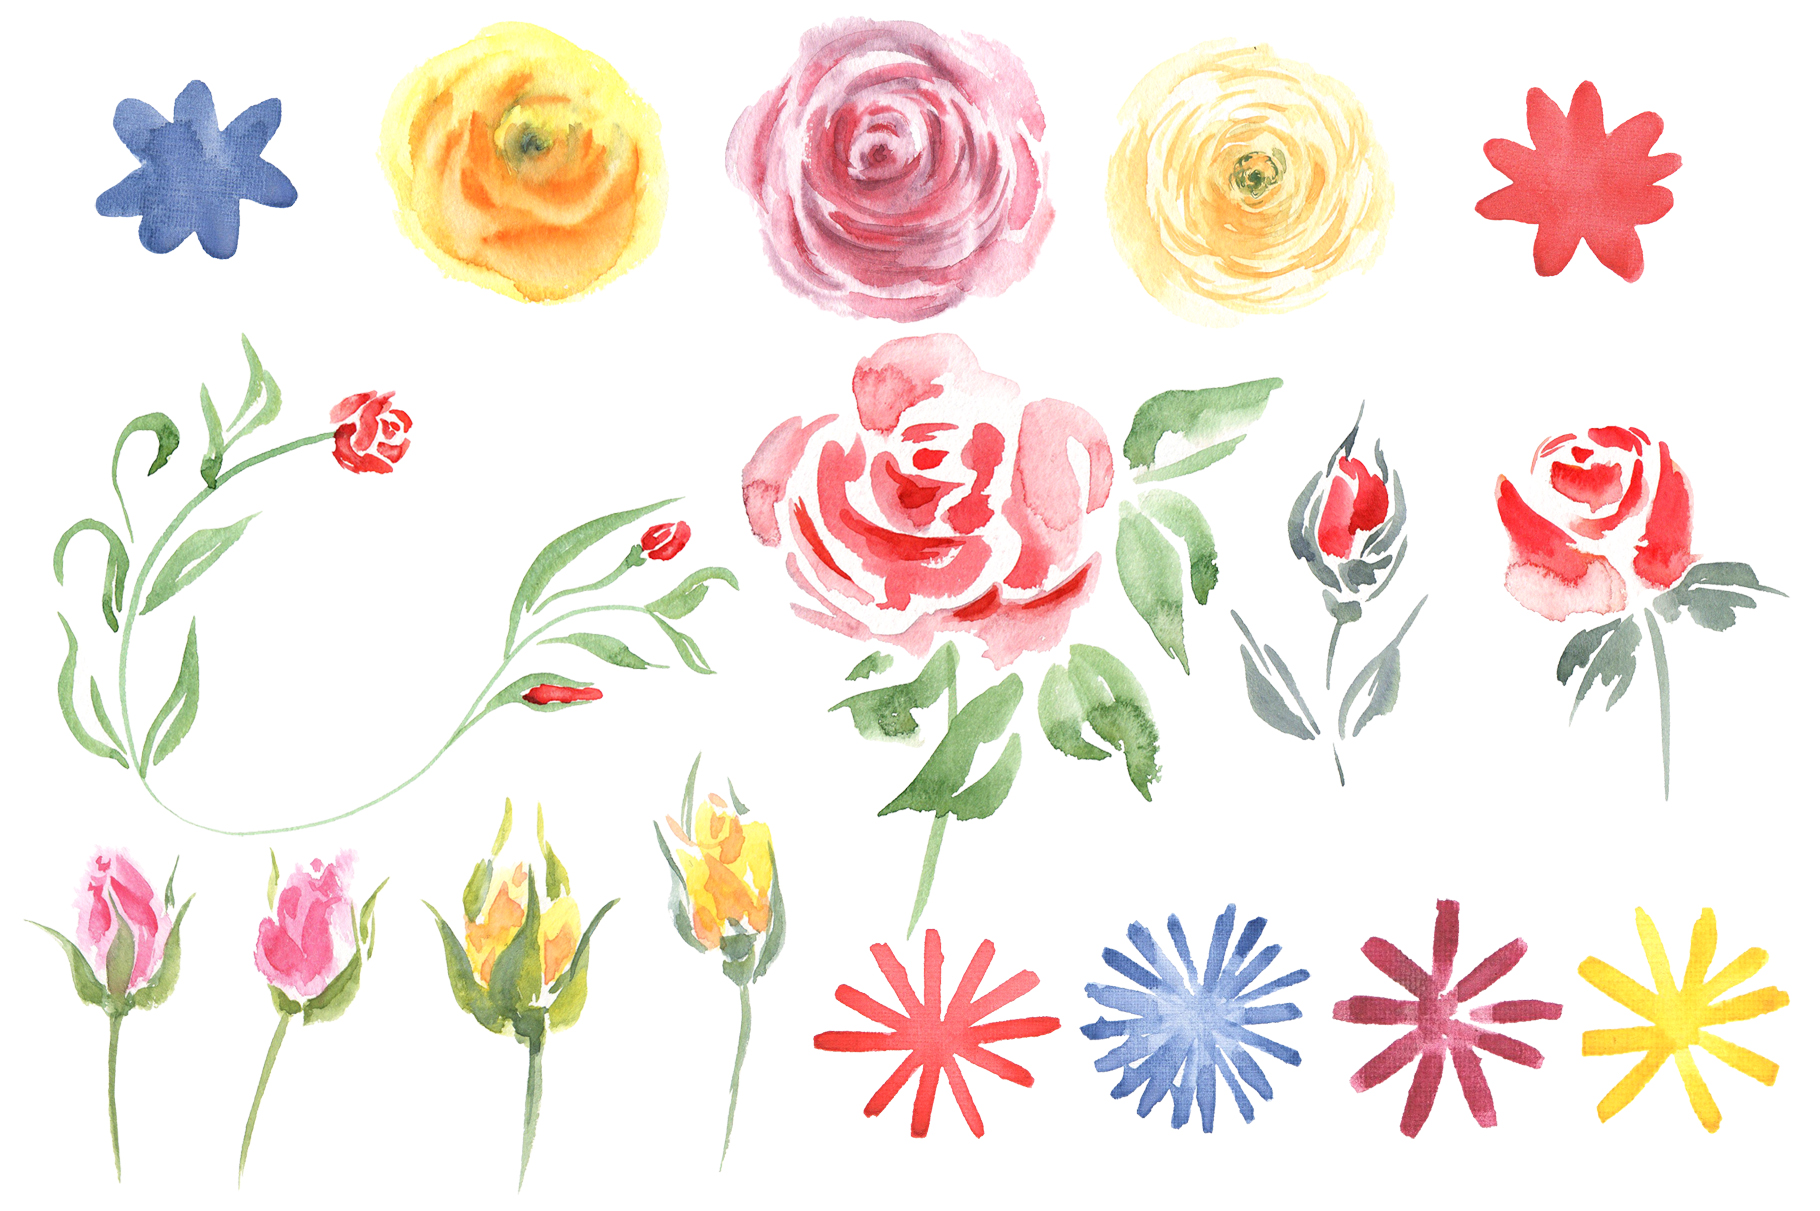 Queen of Flowers watercolor collection example image 4